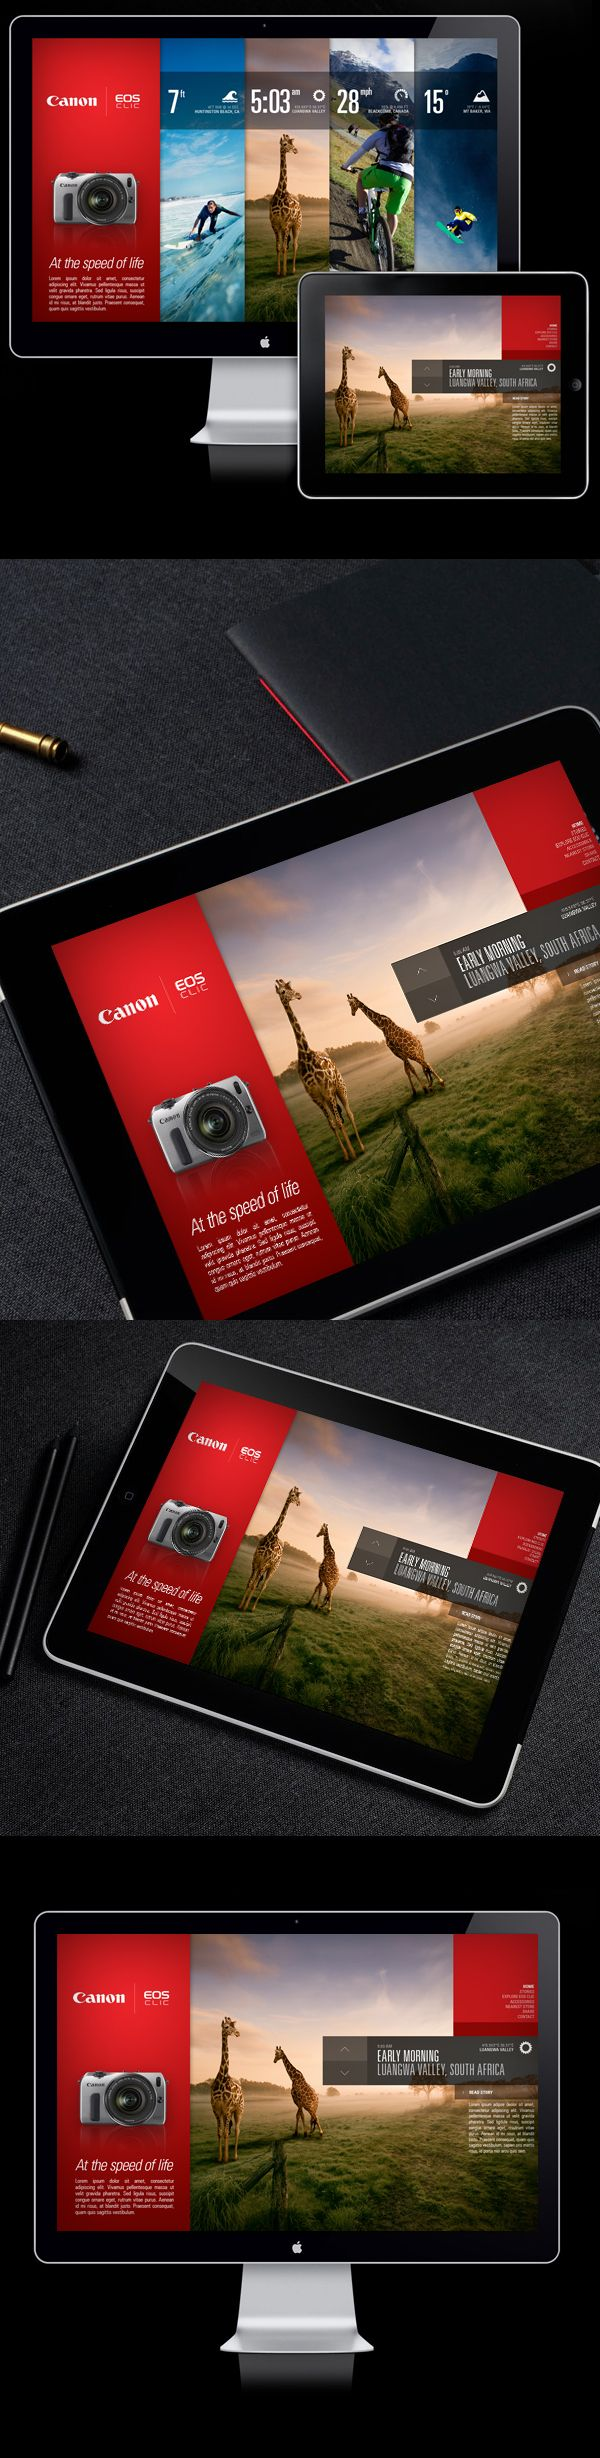 Canon EOS-M / Campaign Microsite on Behance